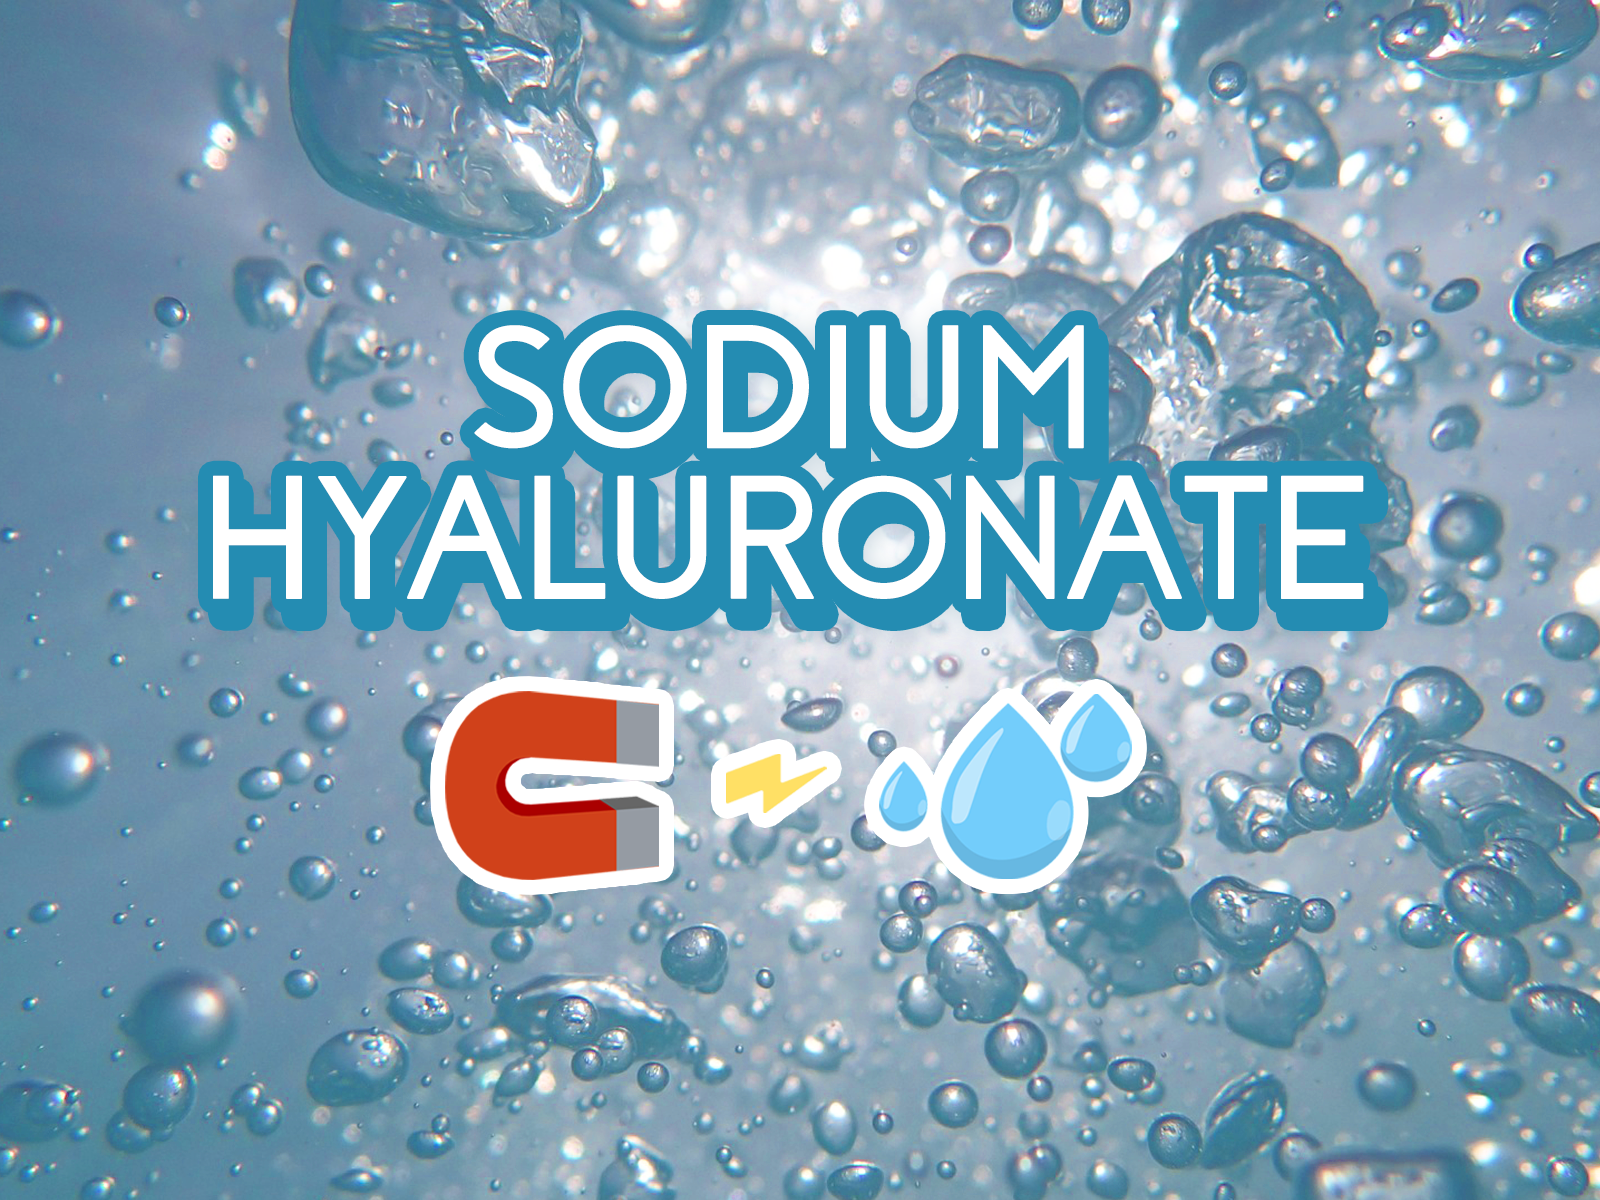 Sodium Hyaluronate - A Powerful Moisture Magnet!